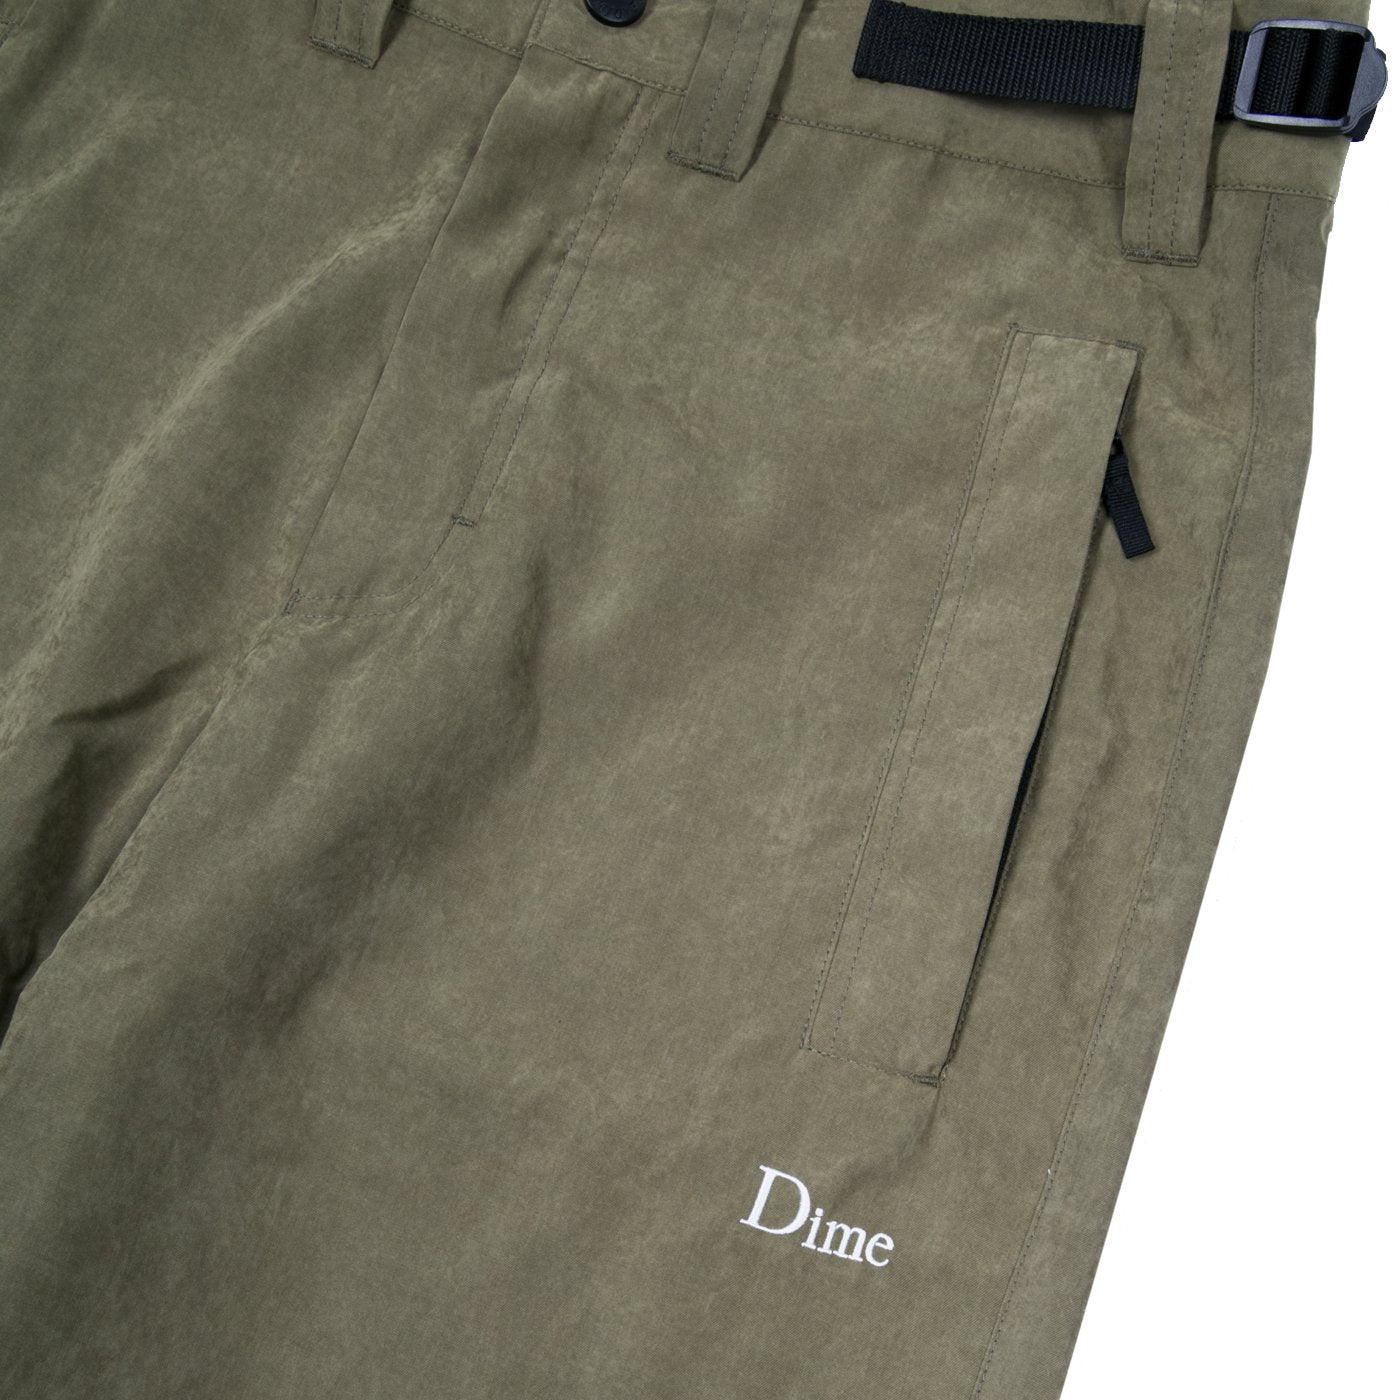 Dime Hiking Pants Product Photo #3